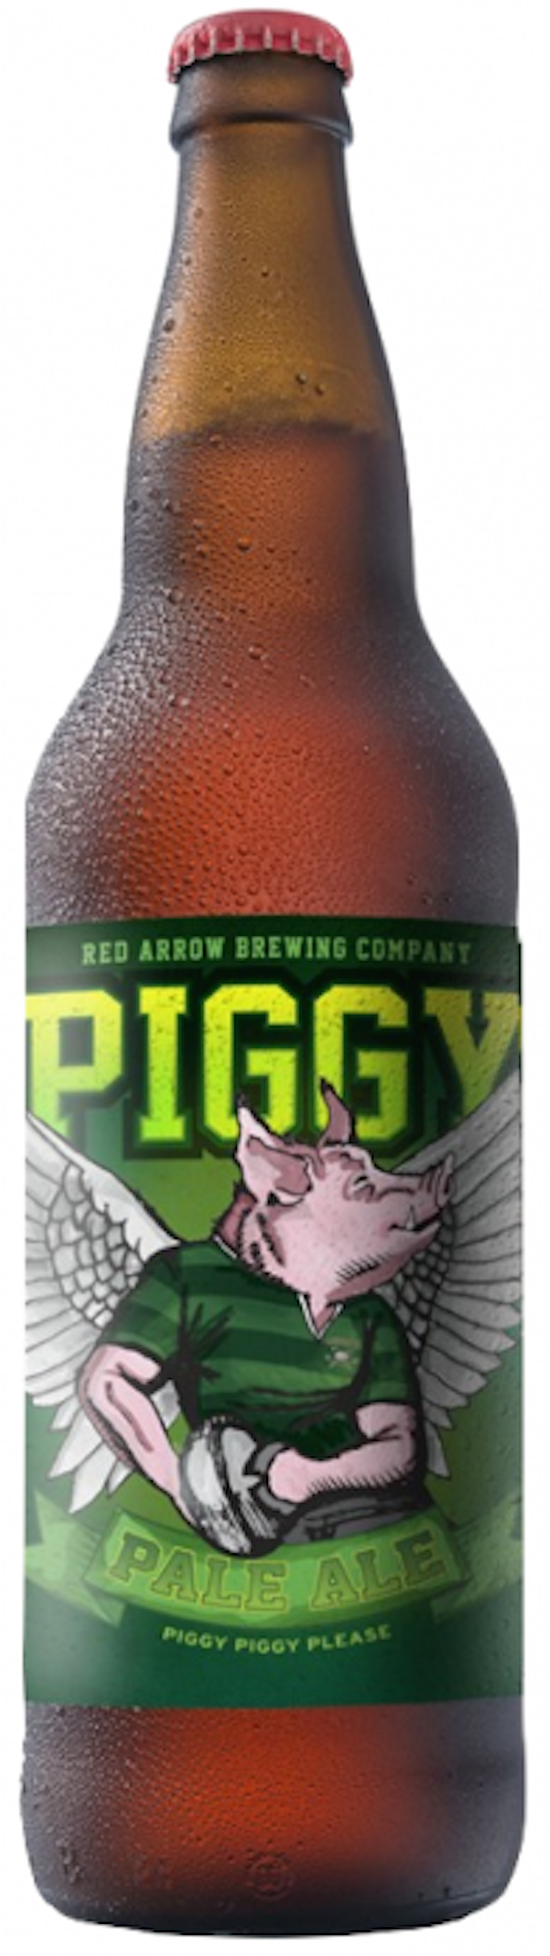 red-arrow-brewing-company-piggy-pale-ale_1477594825